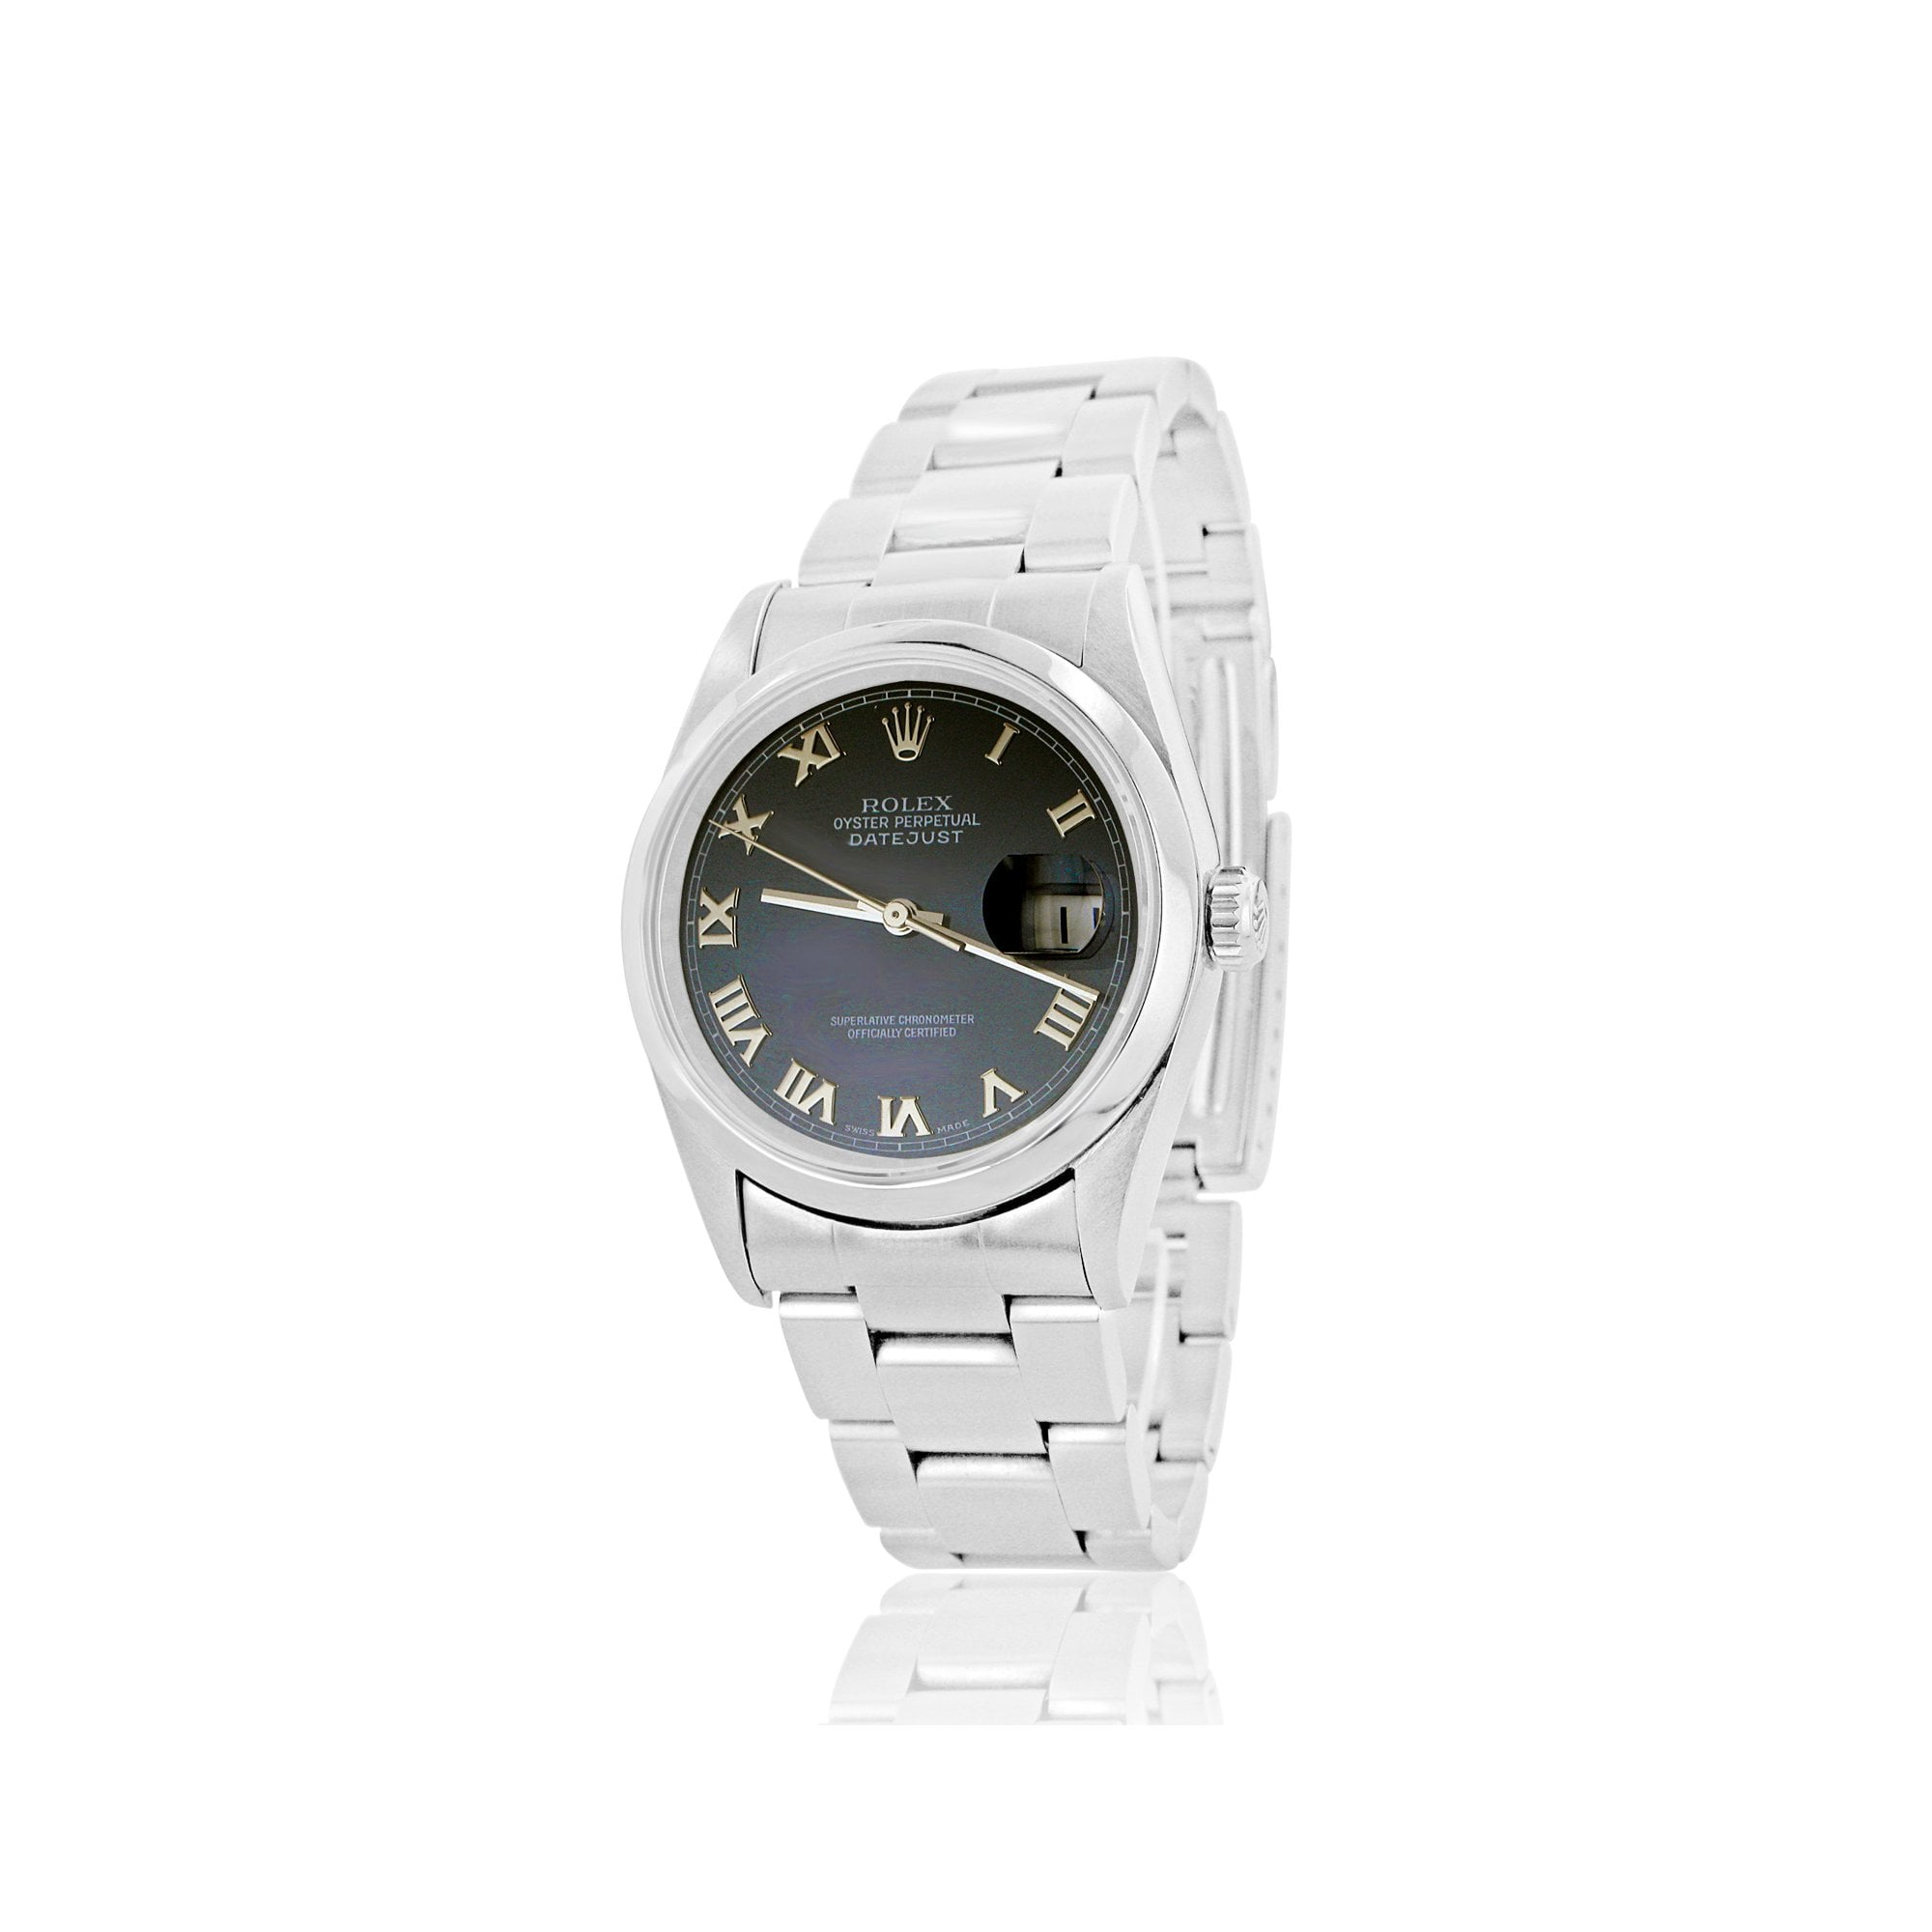 7d1474bf595 Steel Oyster Perpetual Datejust Rolex Watch With a Navy Blue Dial 36mm 16200